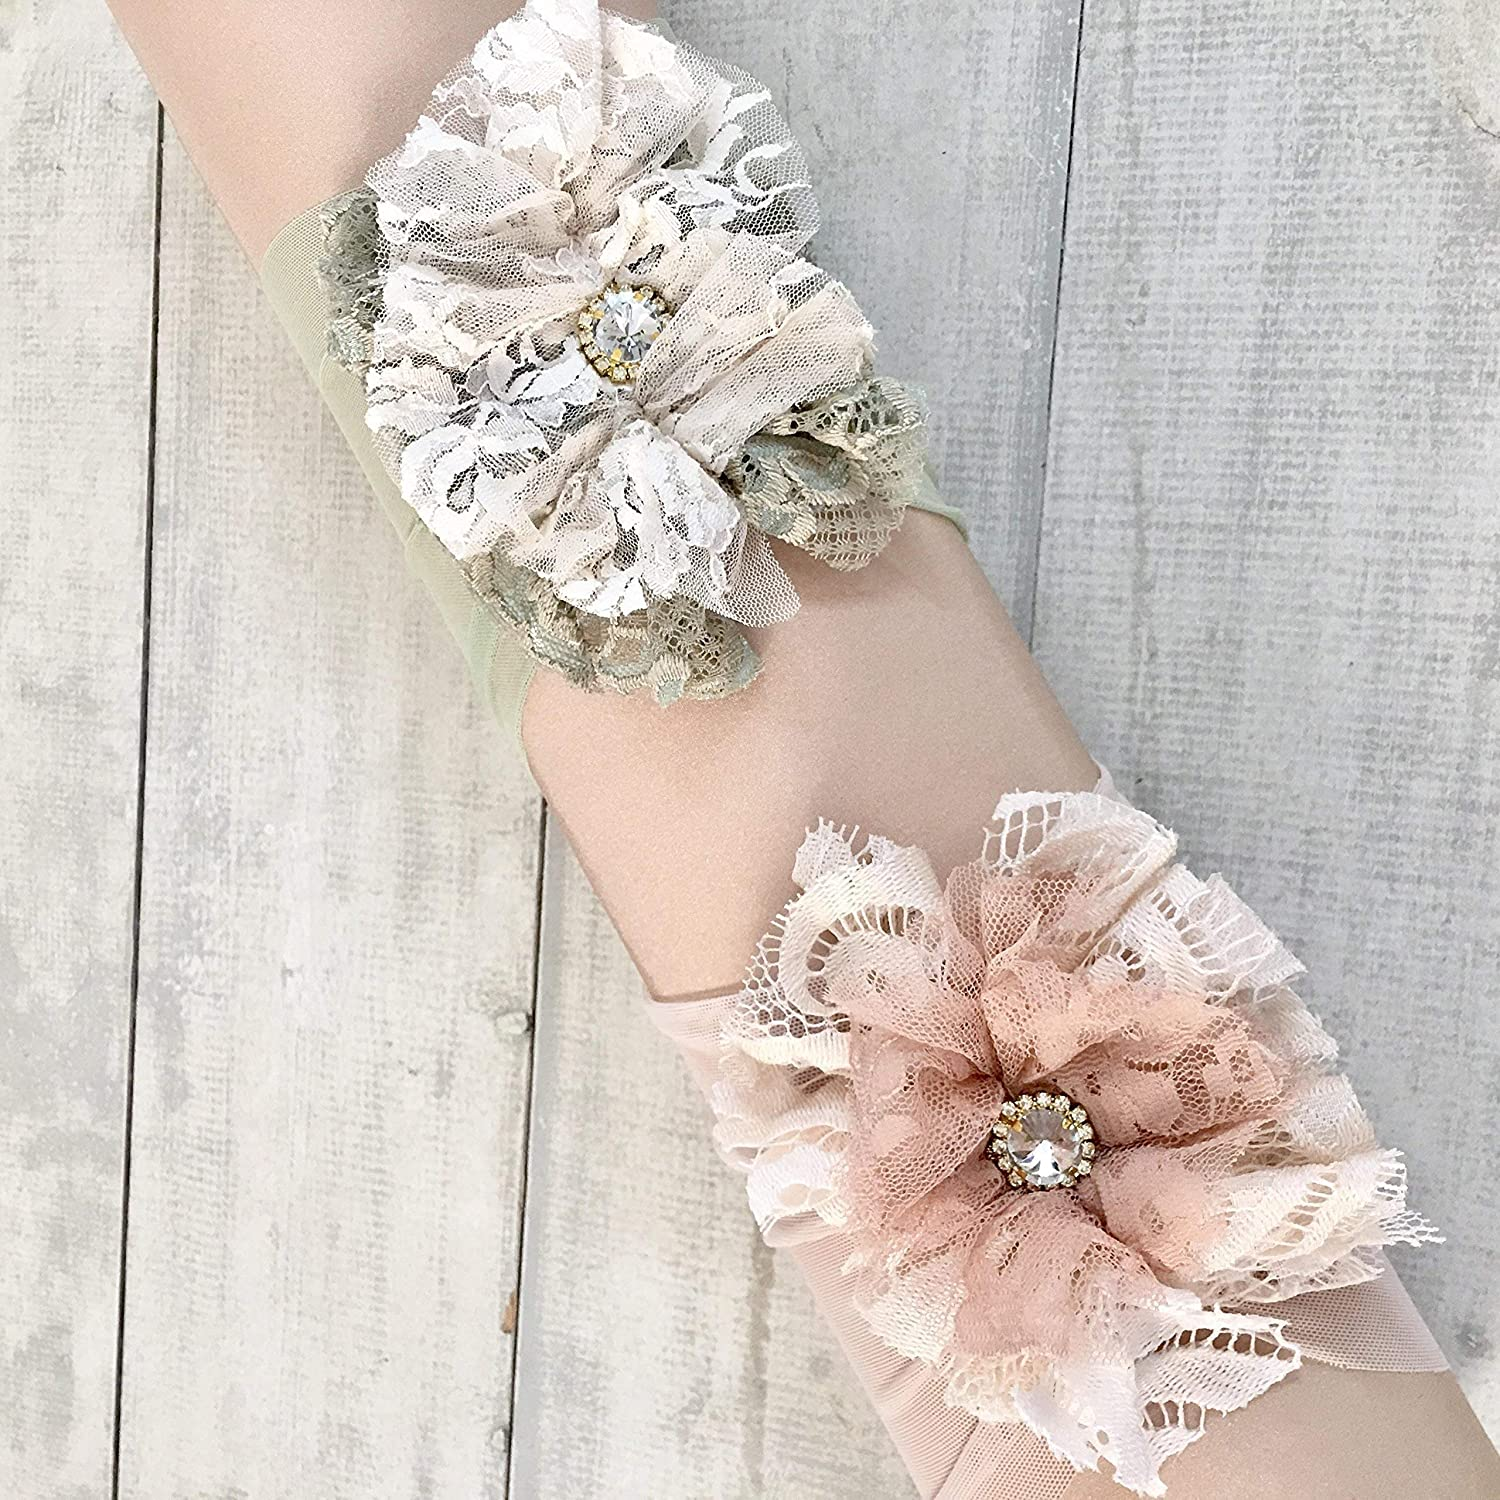 Unique Flower Newborn Headbands Set Of 2 By Yasmine Layani| Headbands with fabric flowers and Rhinestones